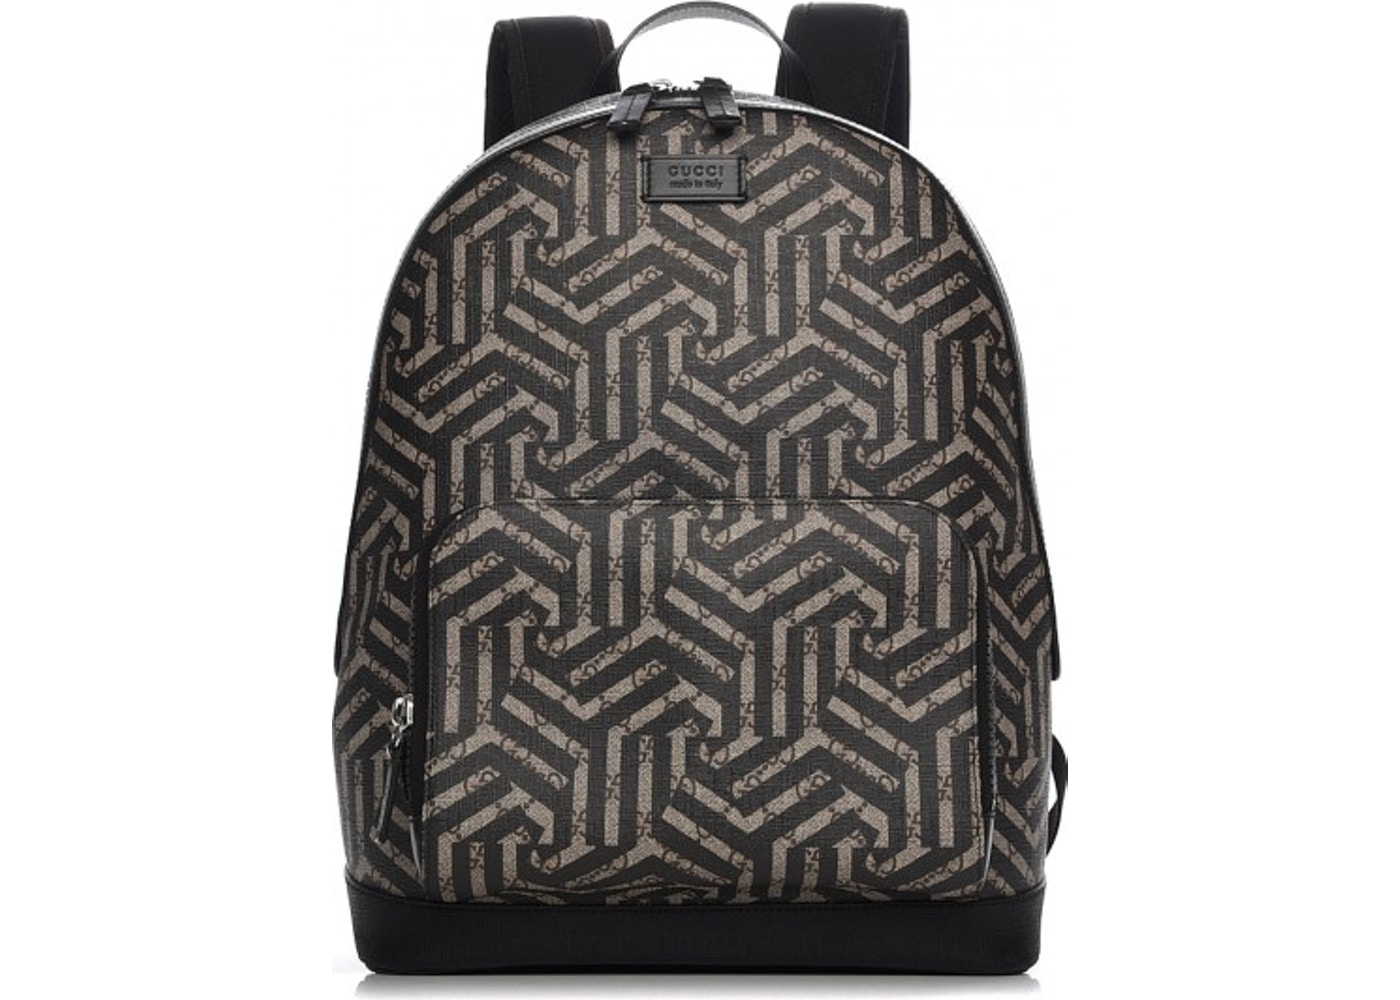 048380ea Gucci Front Pocket Backpack Caleido Print GG Supreme Medium Nero Black. Caleido  Print GG Supreme Medium Nero Black